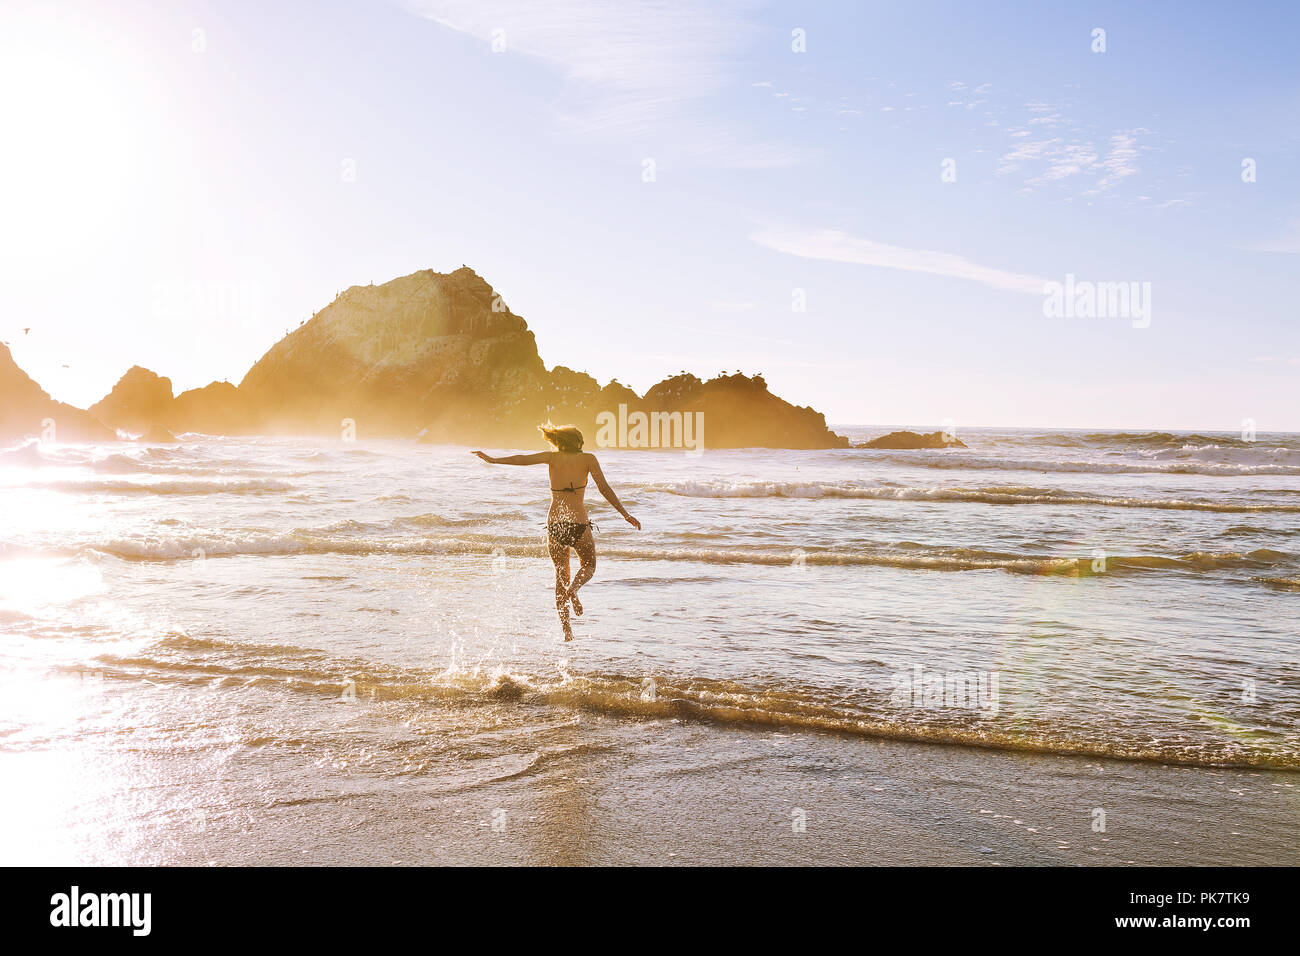 Woman Running into Pacific Ocean - Stock Image